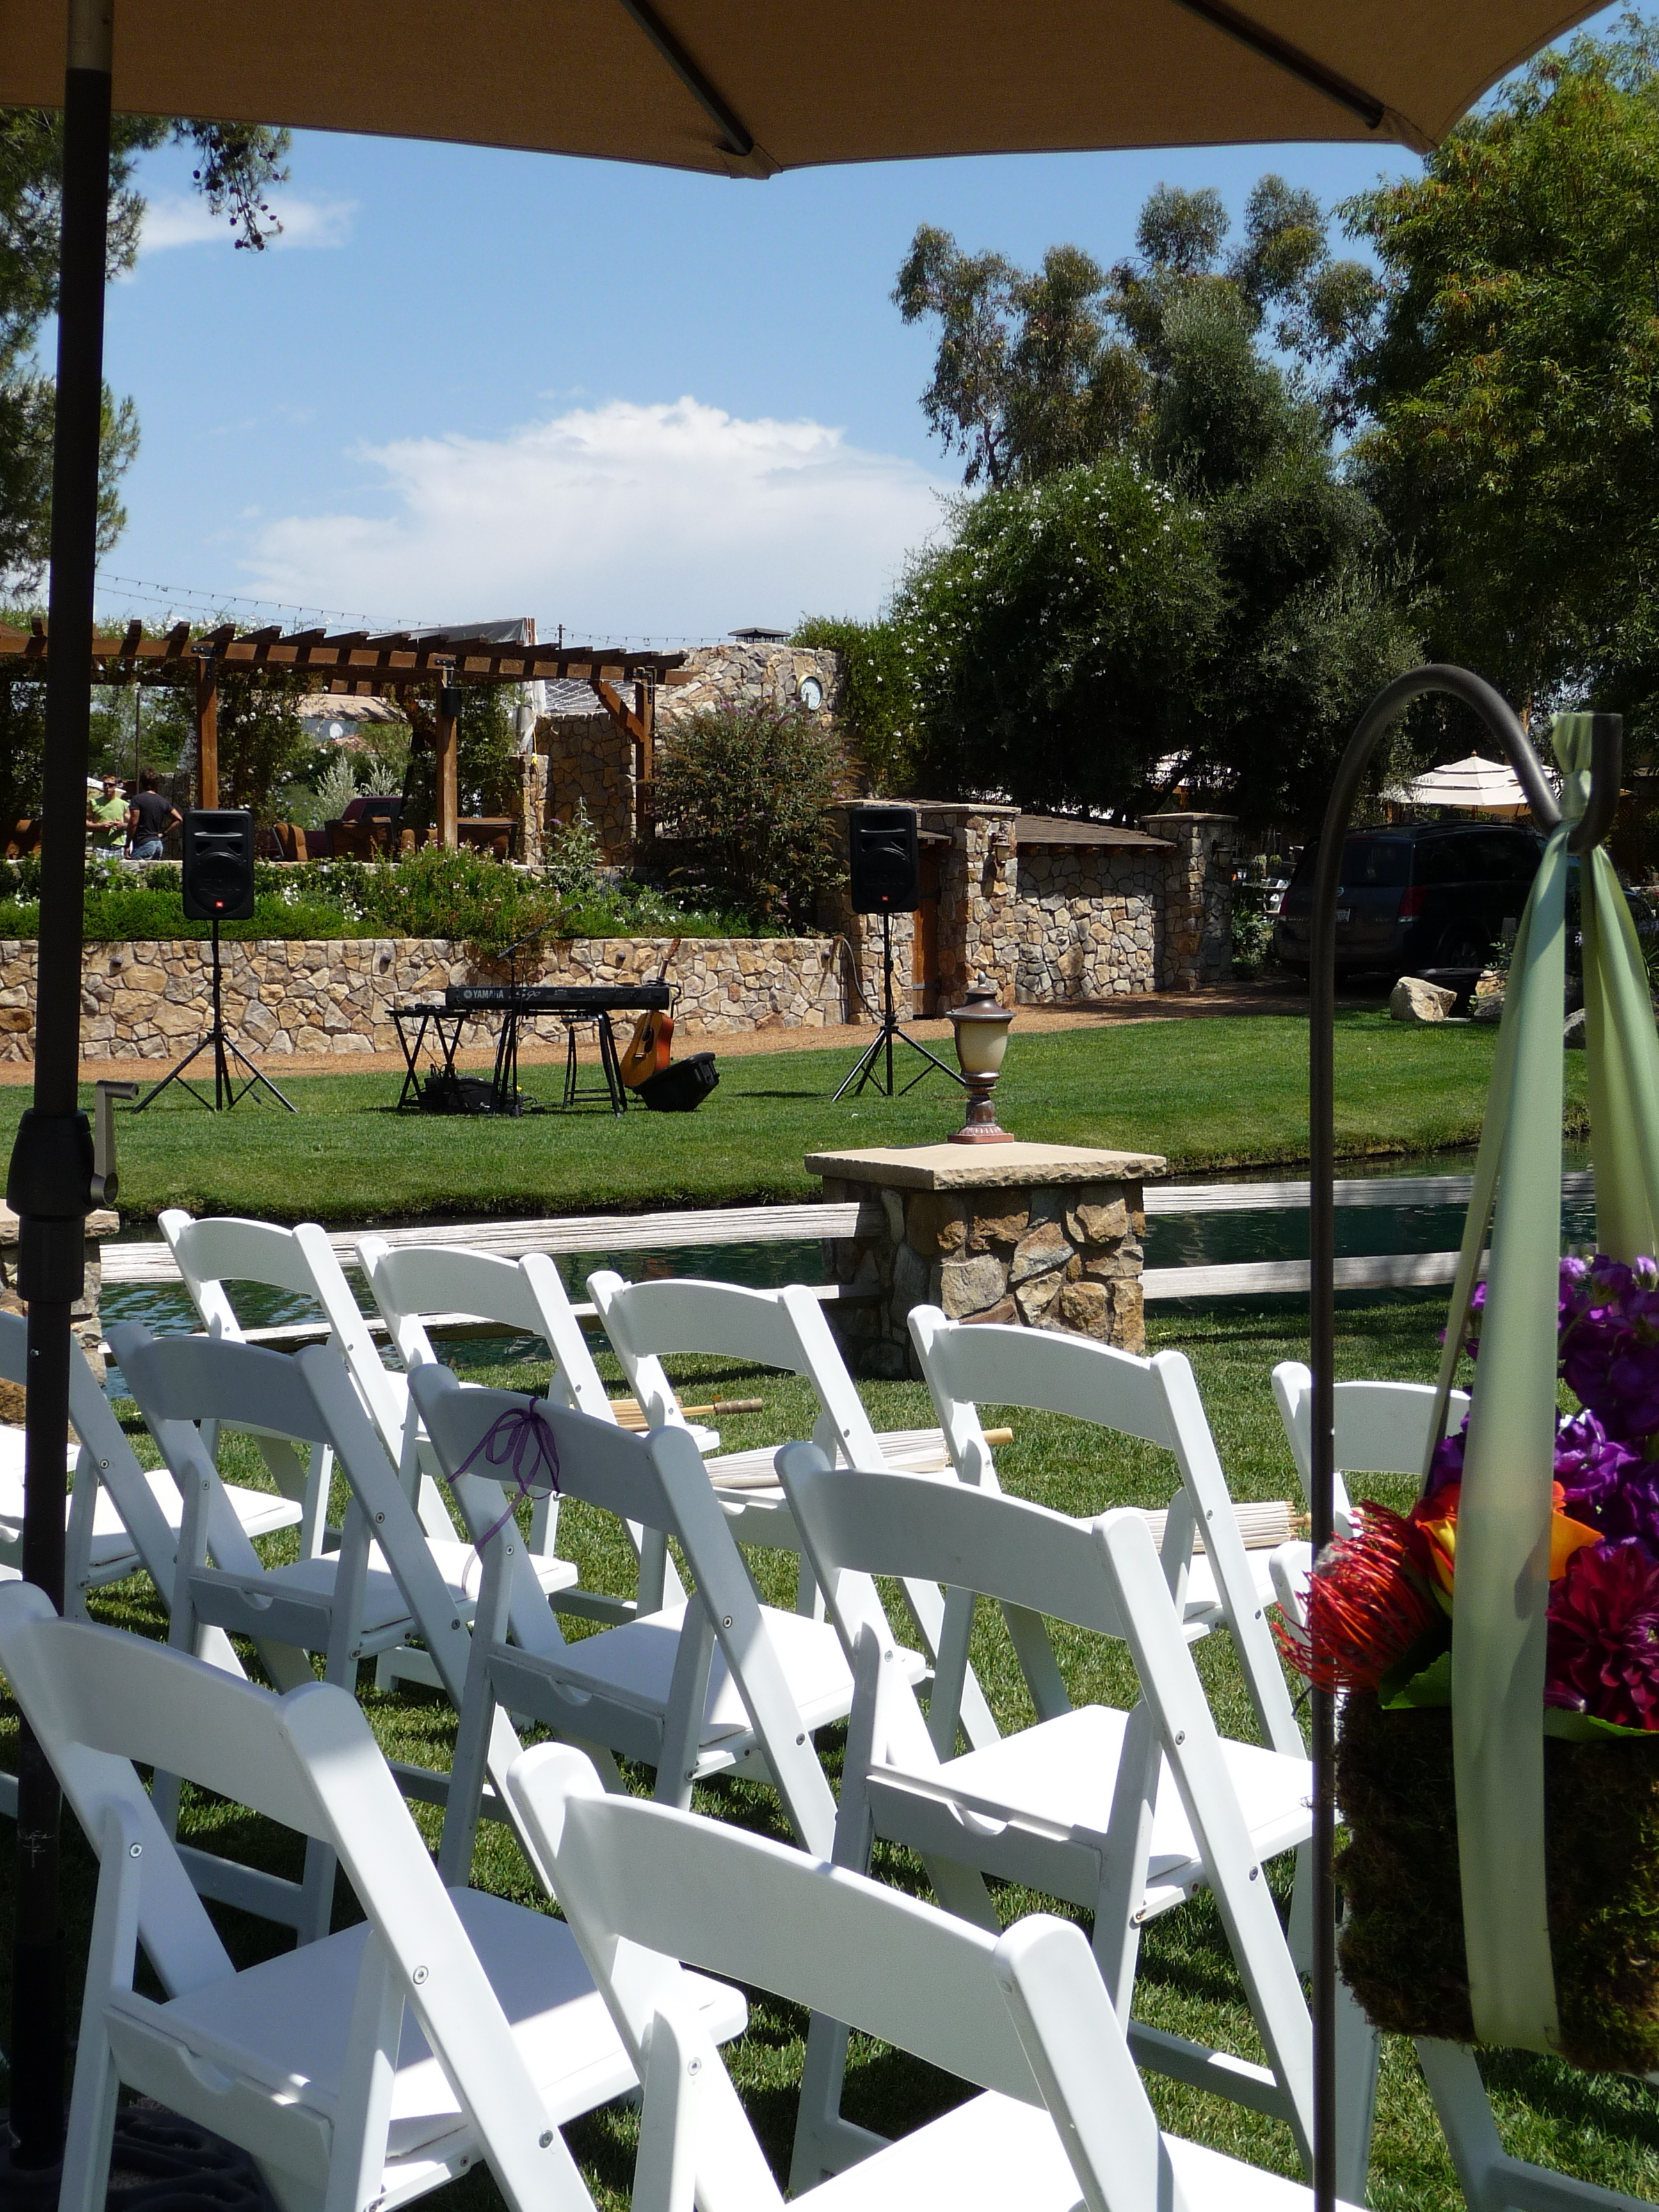 orange, Wedding, County, Los, Angeles, San, California, Diego, Country, Wine, Music, Southern, Temecula, Guitar, Live, Cal, Singer, Acoustic, So, Duo, Drums, Corona, Mike brian productions live music dj service, Fallbrook